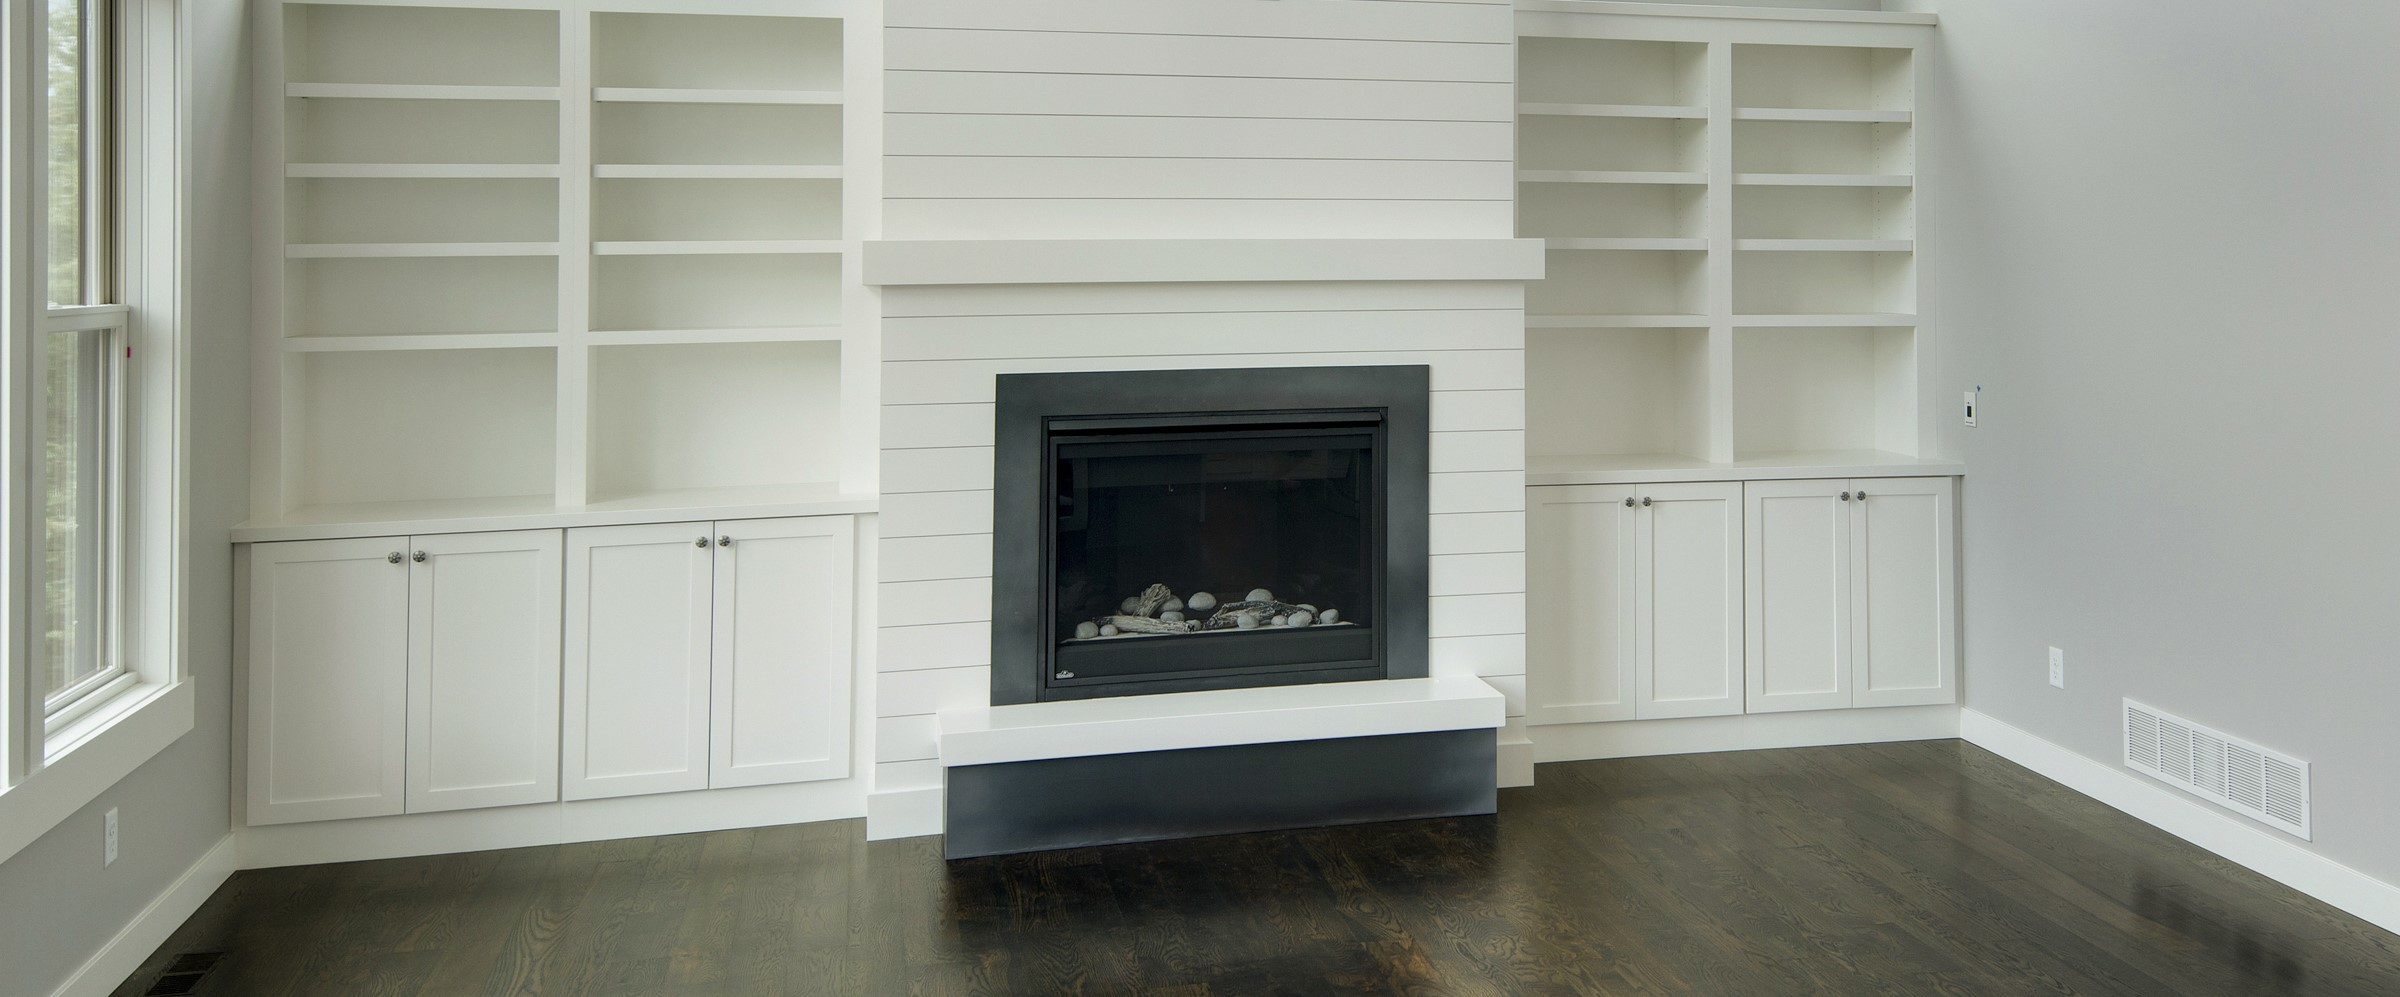 fireplace-surround-w-return-44.jpg